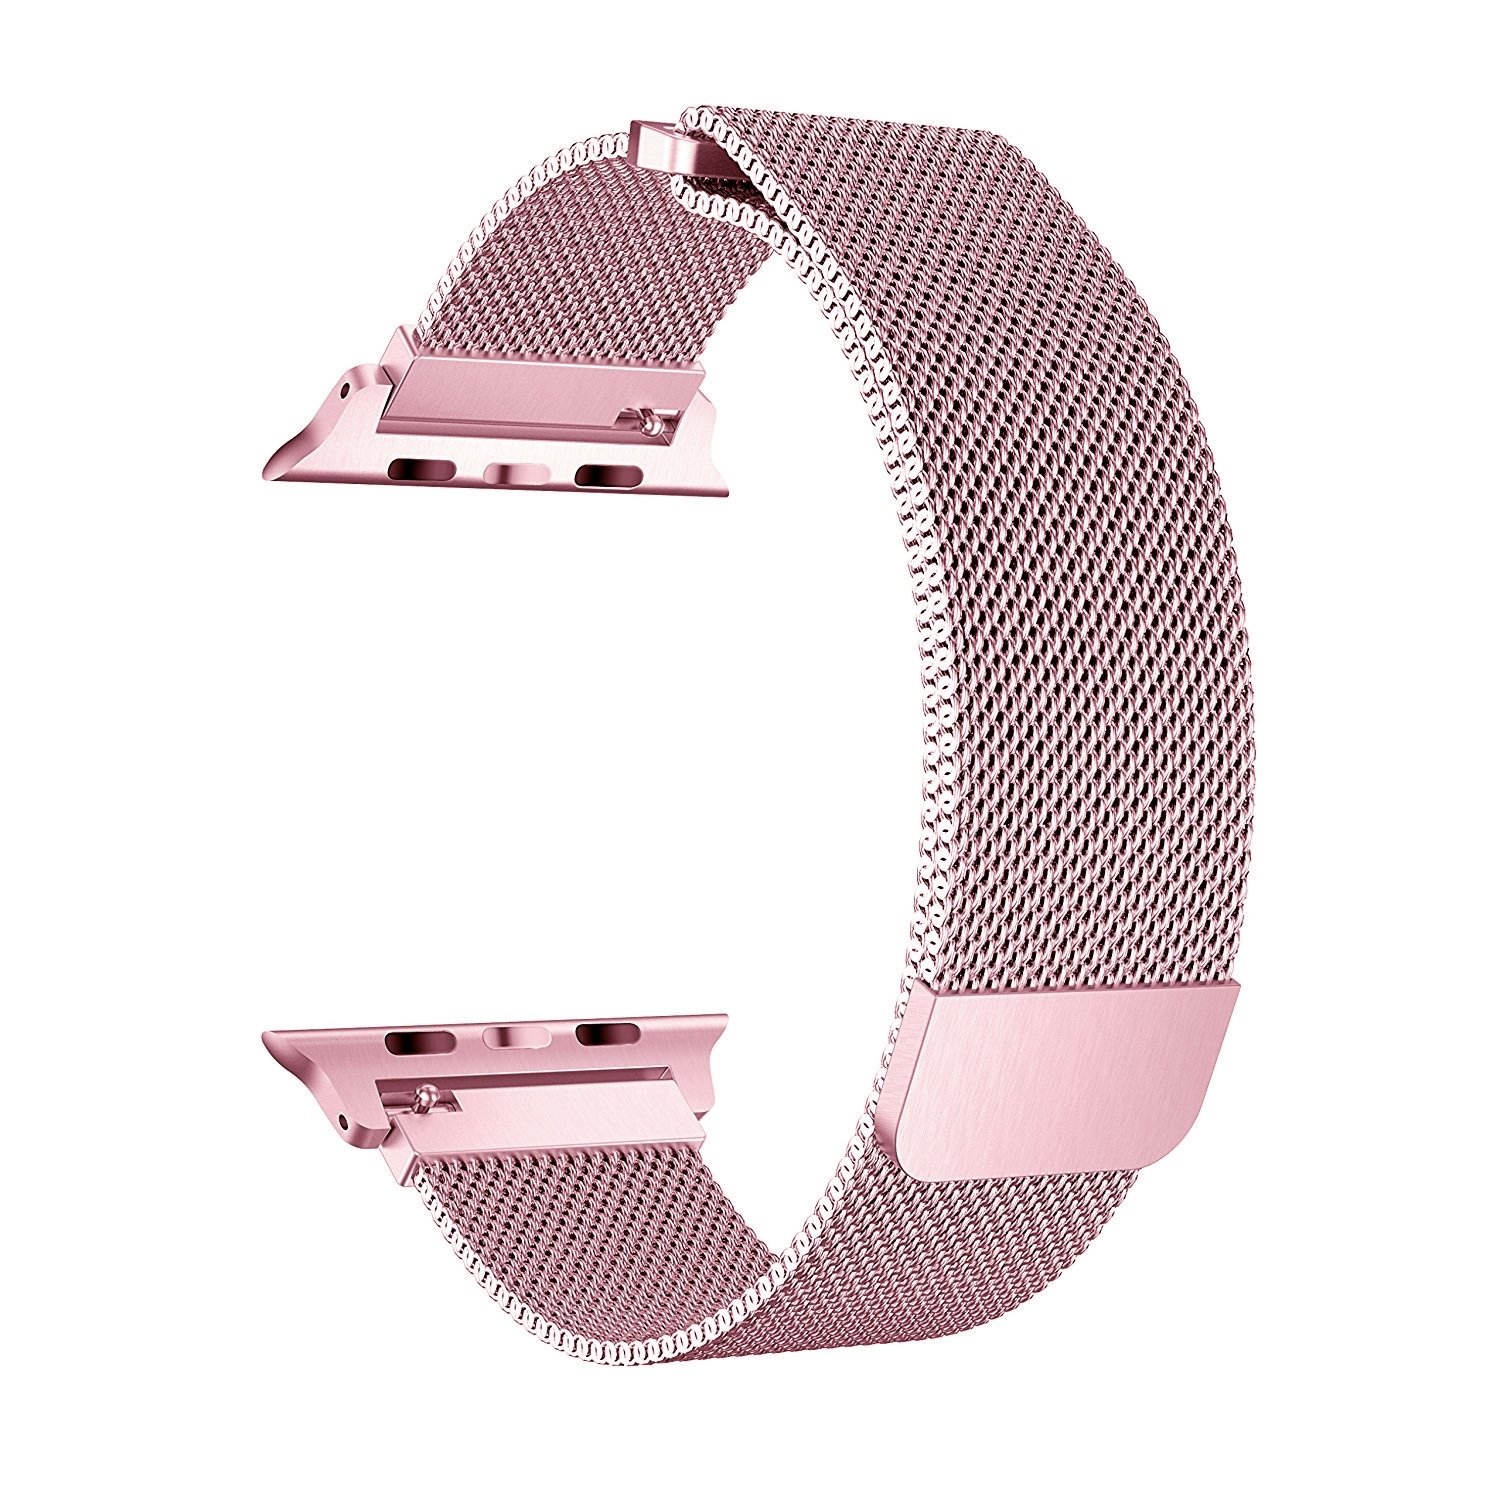 BRG for Apple Watch Band 38mm 42mm, Stainless Steel Mesh Milanese Loop with Adjustable Magnetic Closure Replacement iWatch Band for Apple Watch Series 3 2 1 (Rose Gold, 38mm)